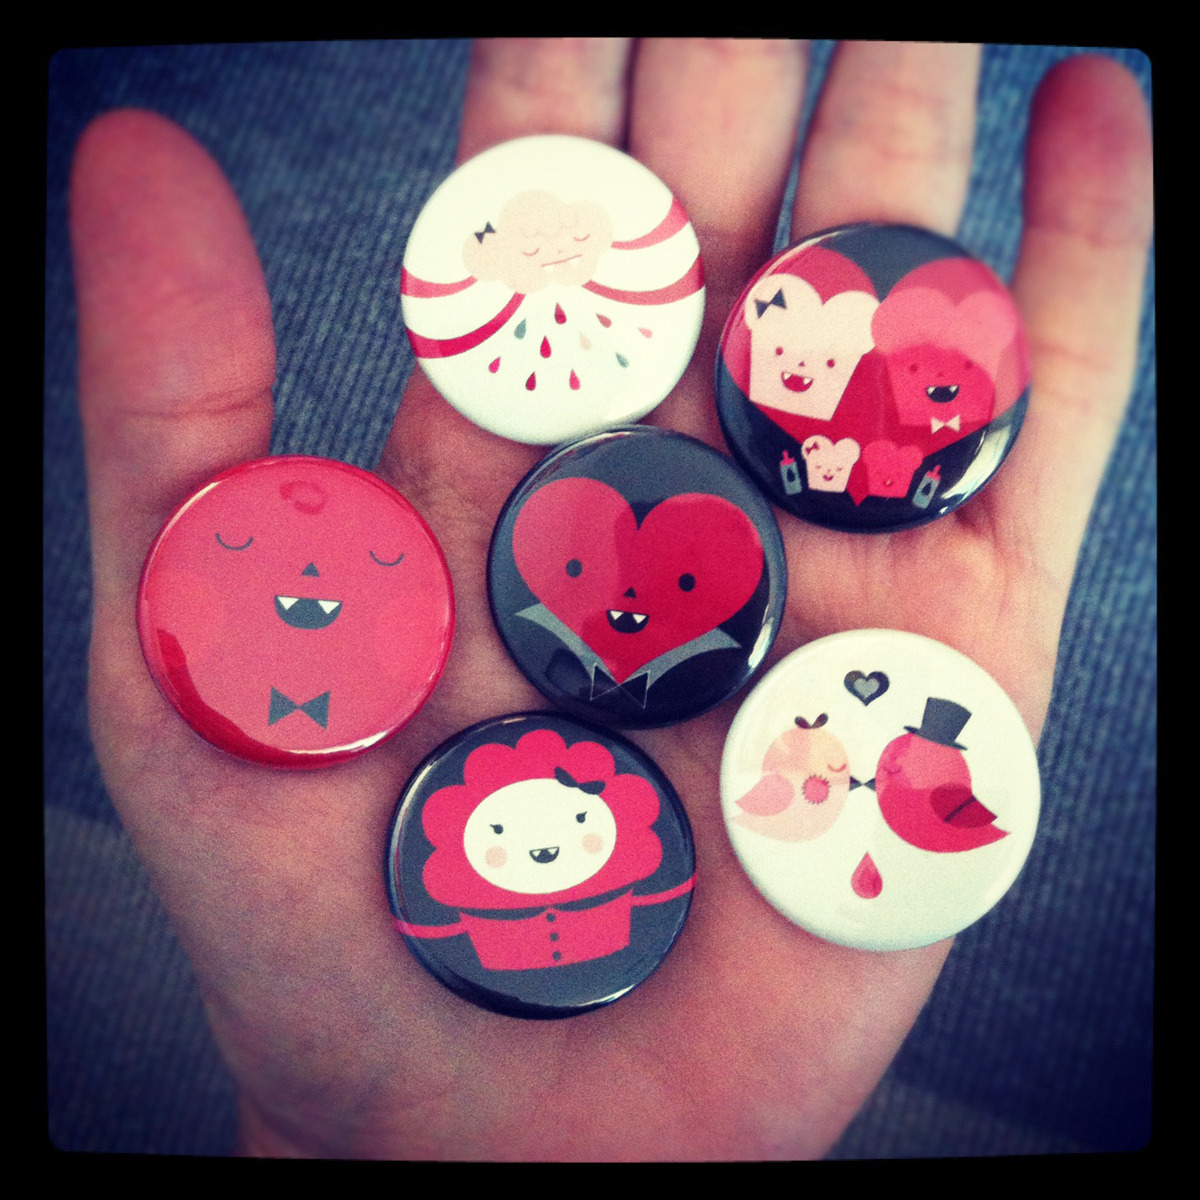 Bloody Family buttons.